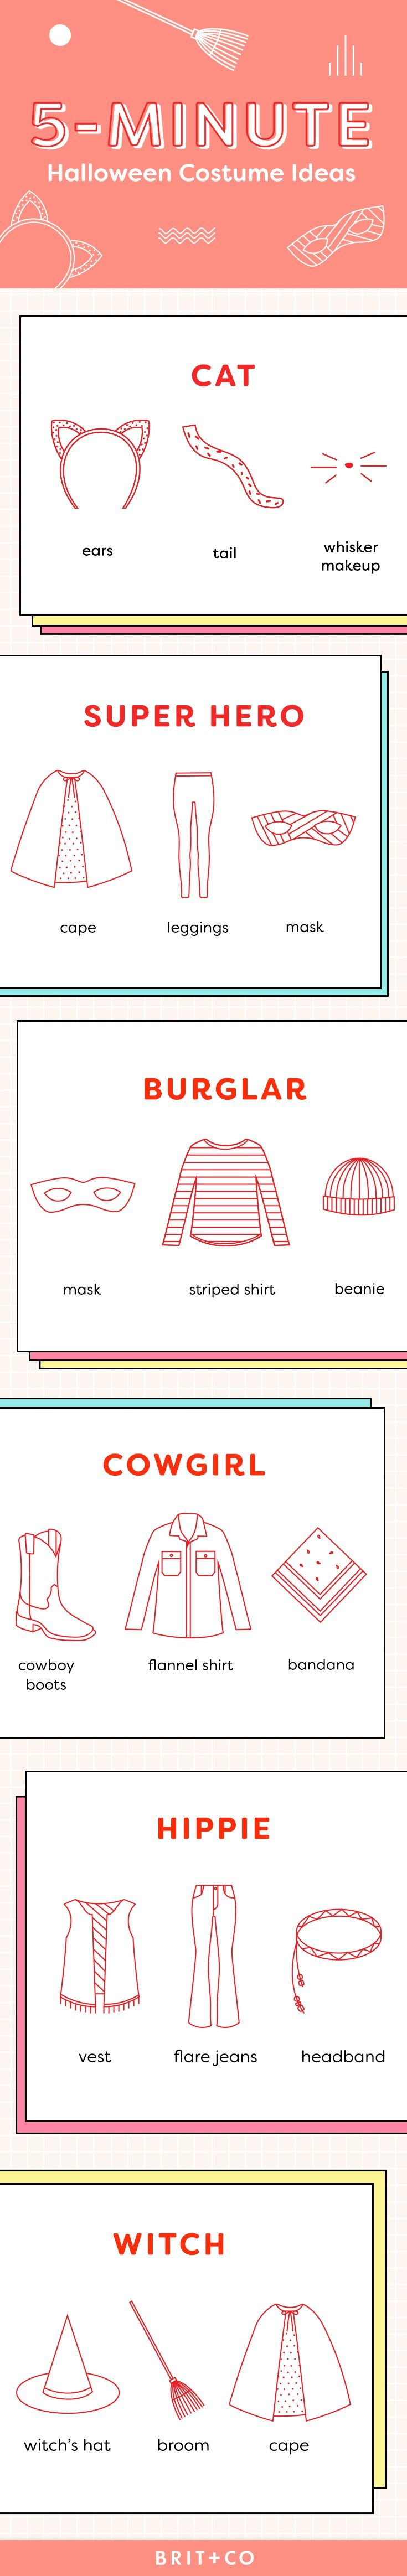 Bookmark this last-minute infographic for 5-minute Halloween costume ideas like a cat, a super hero, a burglar, a cowgirl, a hippie, and a witch.